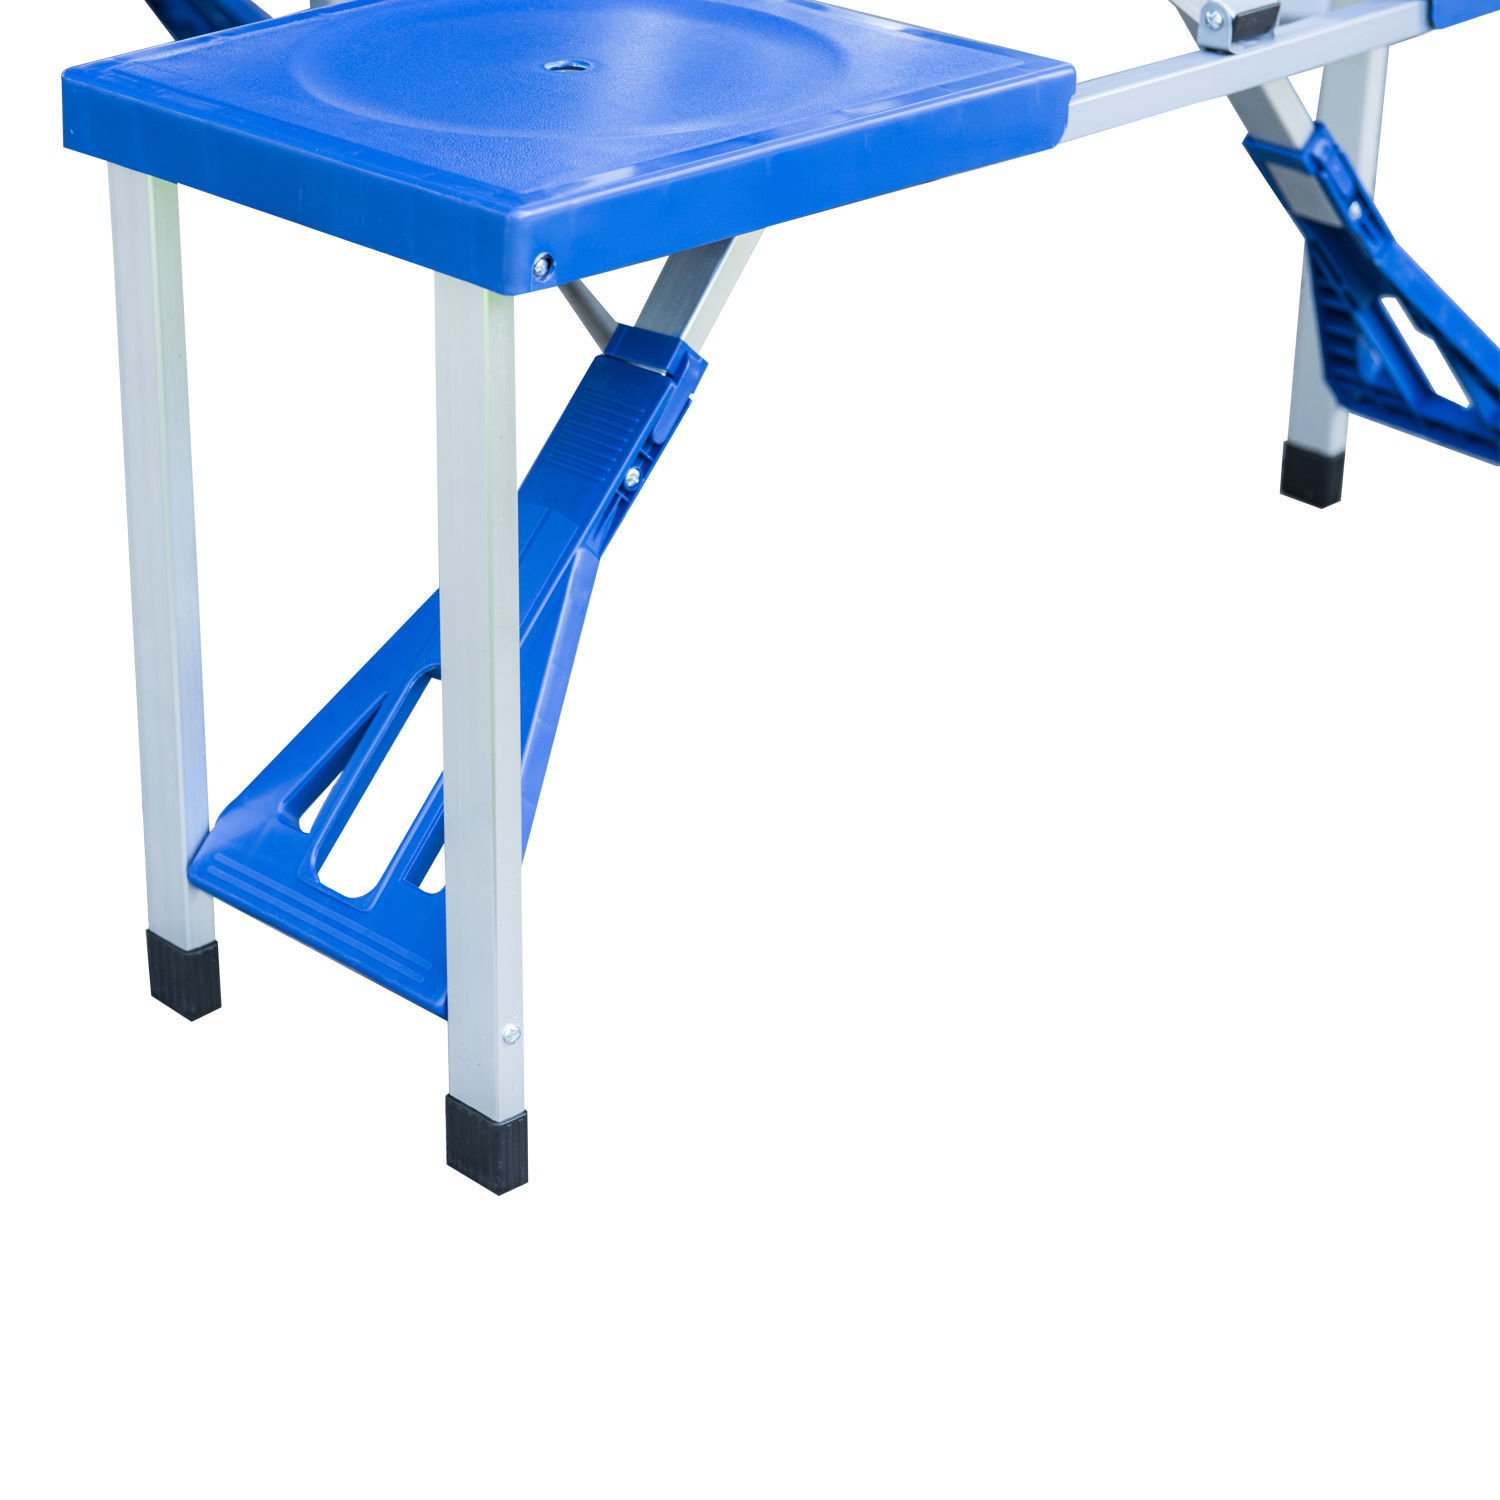 Ar Portable Folding Plastic Camping Picnic Table 4 Seats Outdoor Garden W/Case Blue by Ar (Image #7)